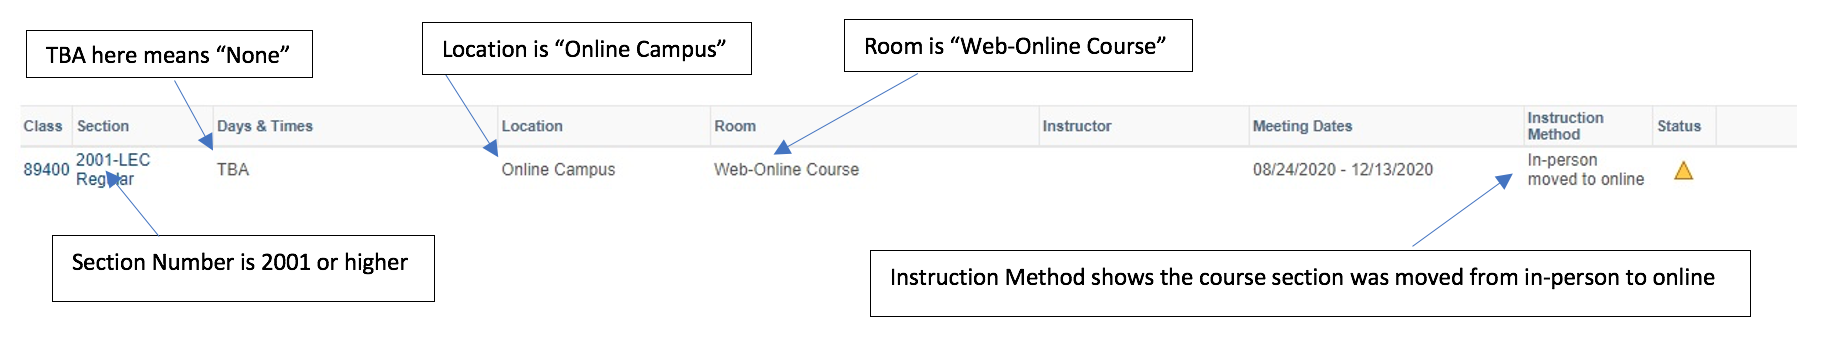 Picture of In-Person Course Sections Moved Online with no Days/Times listed